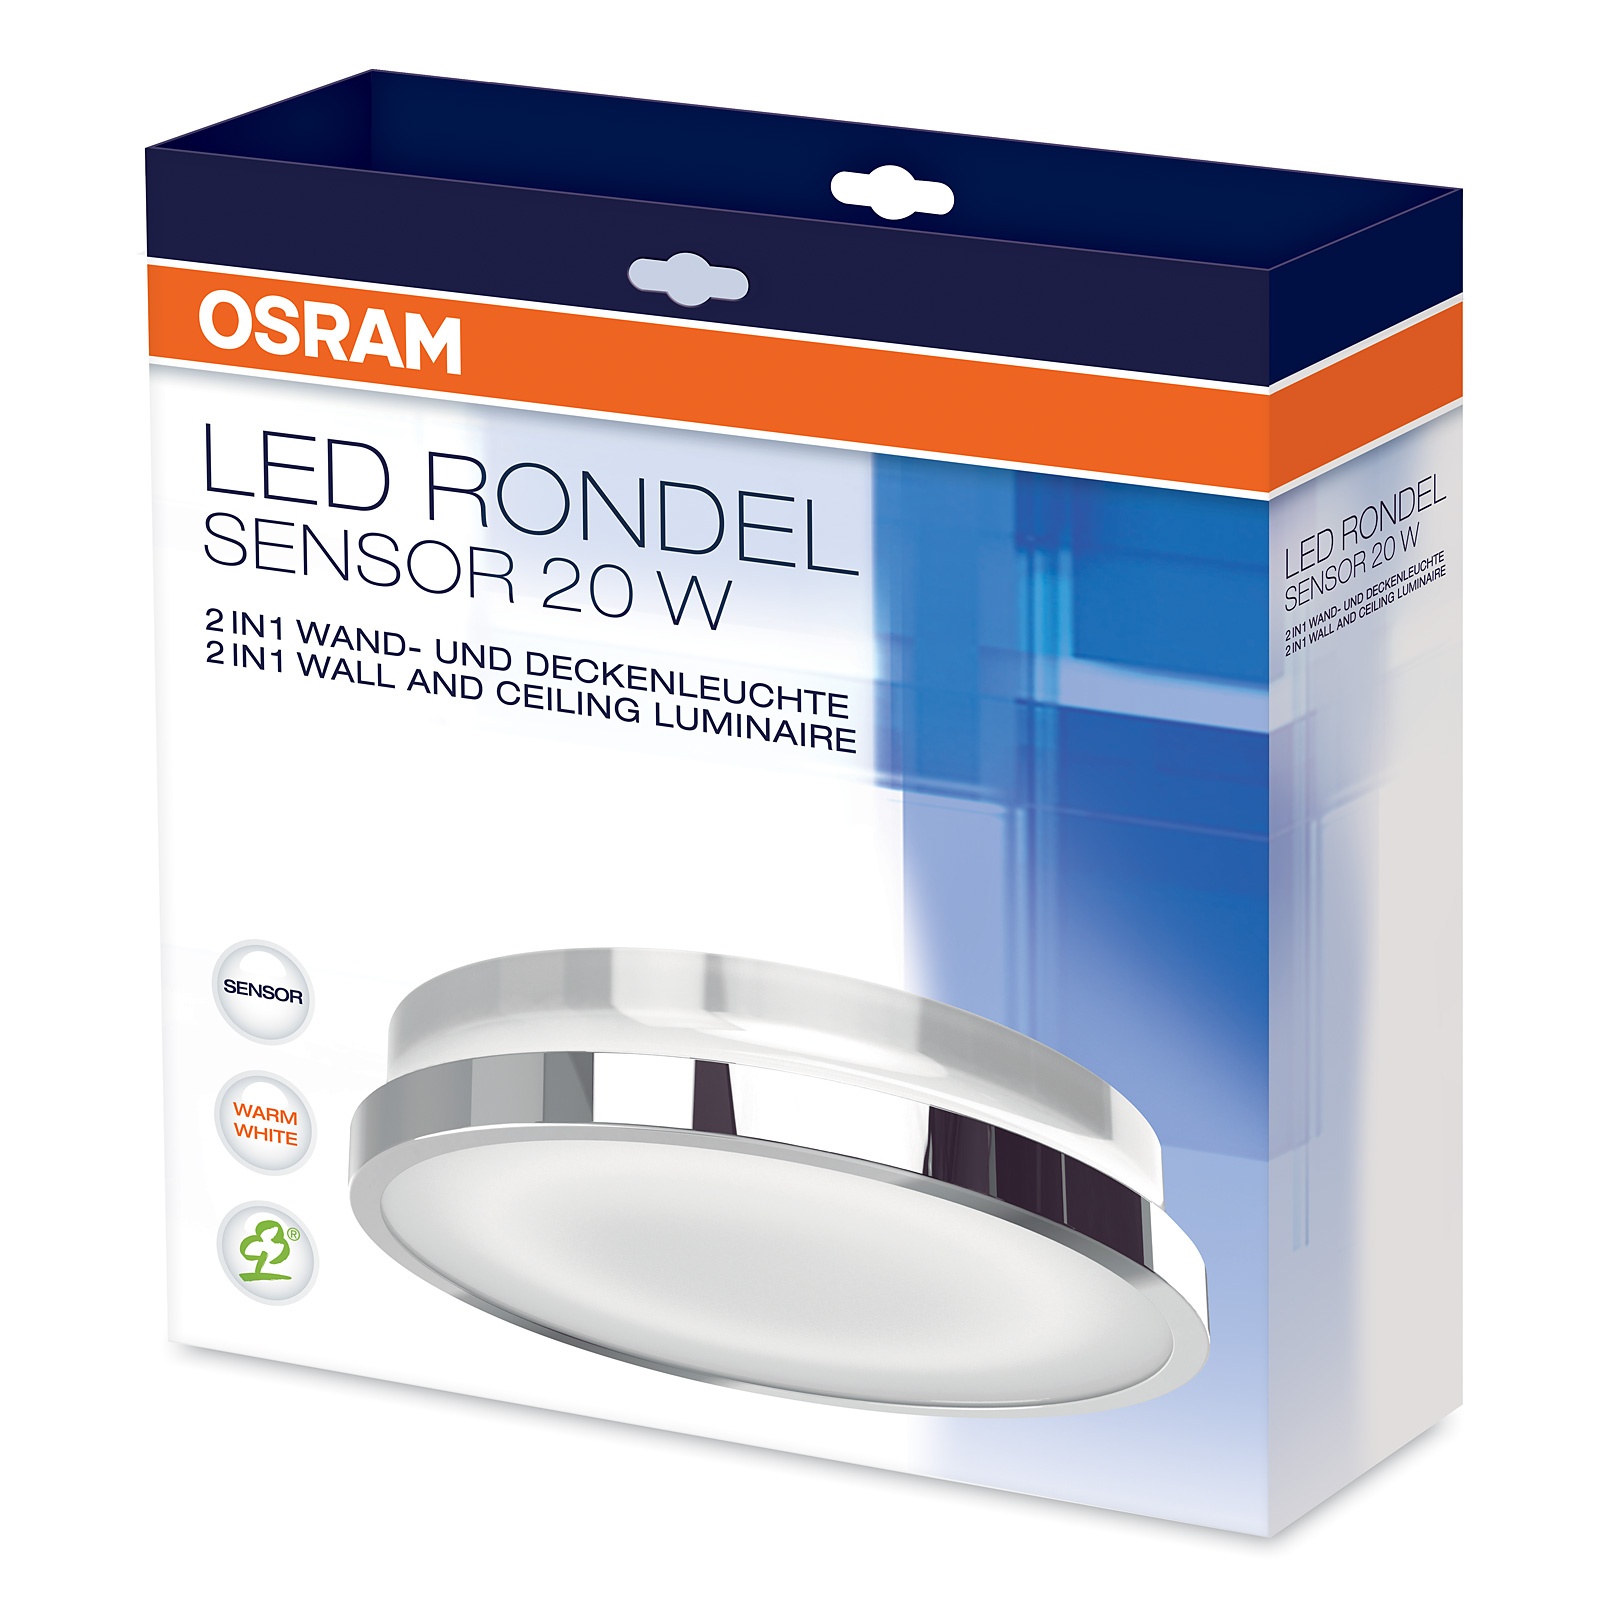 osram led deckenleuchte rondel sensor 21w warmwei 3000k. Black Bedroom Furniture Sets. Home Design Ideas